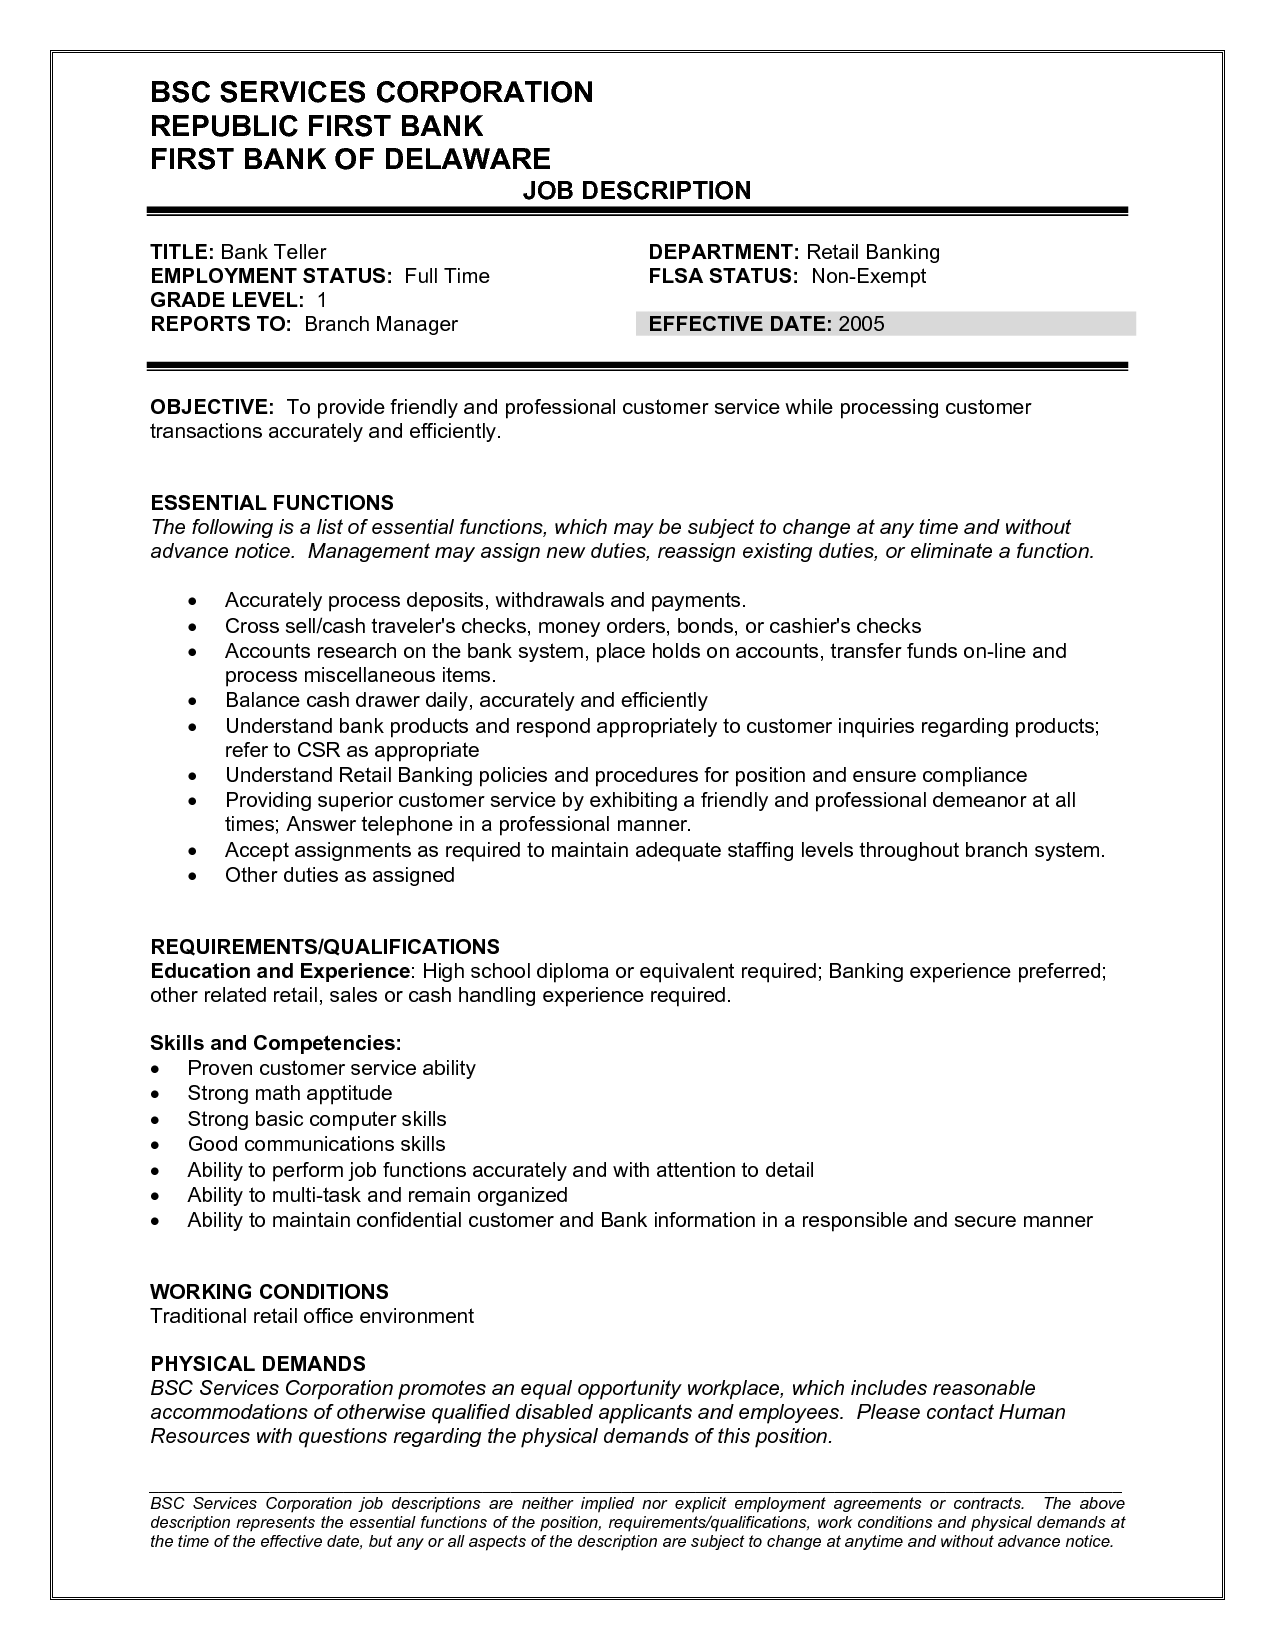 Teller Job Description Resume Bank Teller Job Duties And Responsibilities  Bank Teller Skills